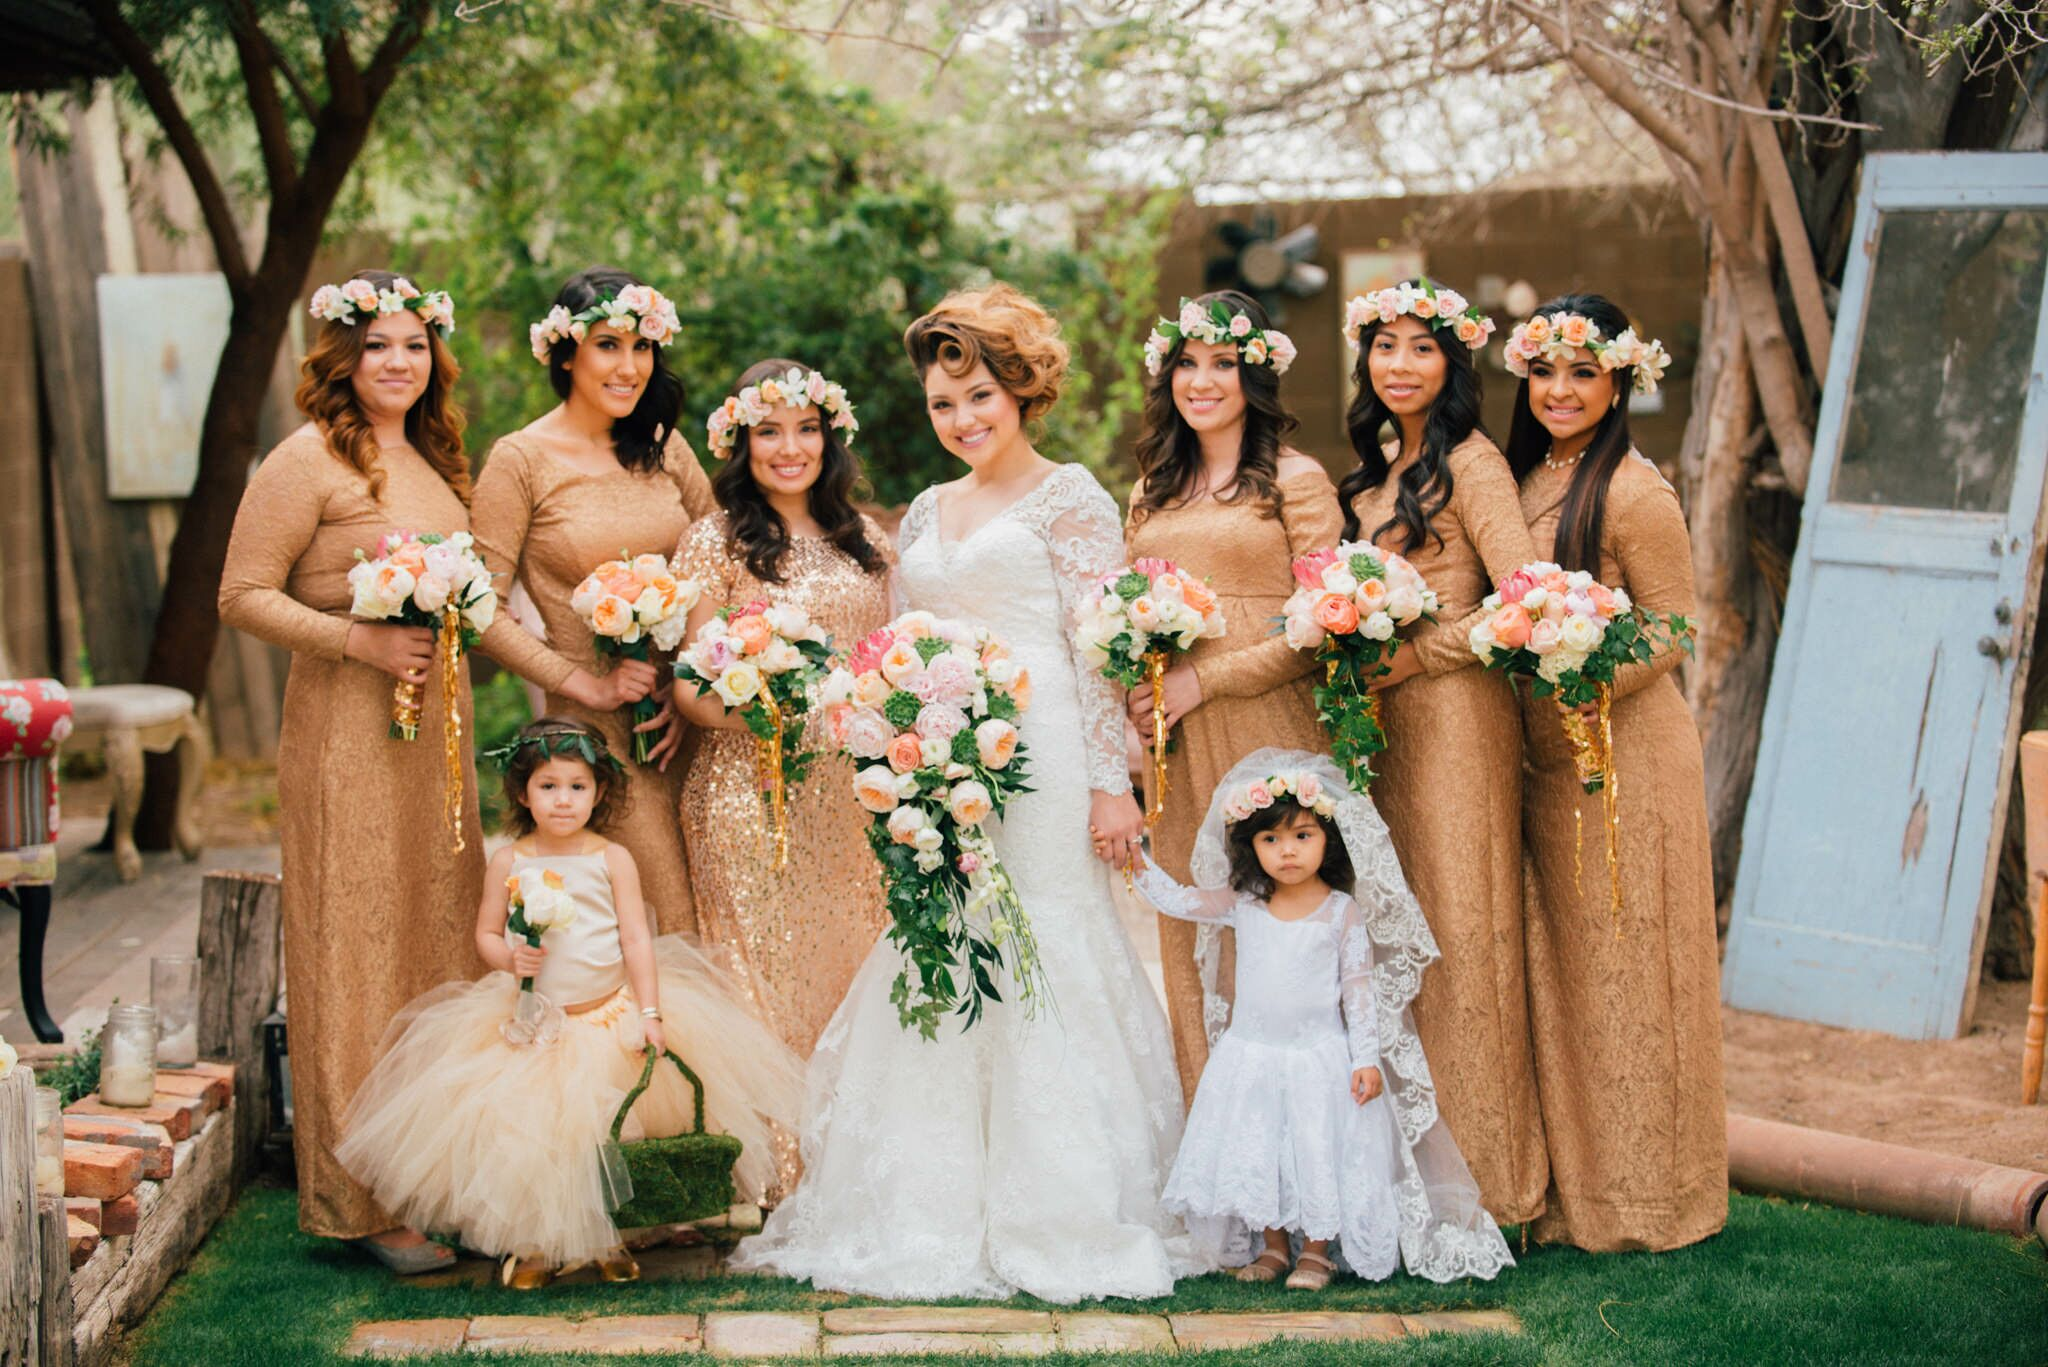 Gold Shimmering Bridesmaids Dresses With Floral Wreaths